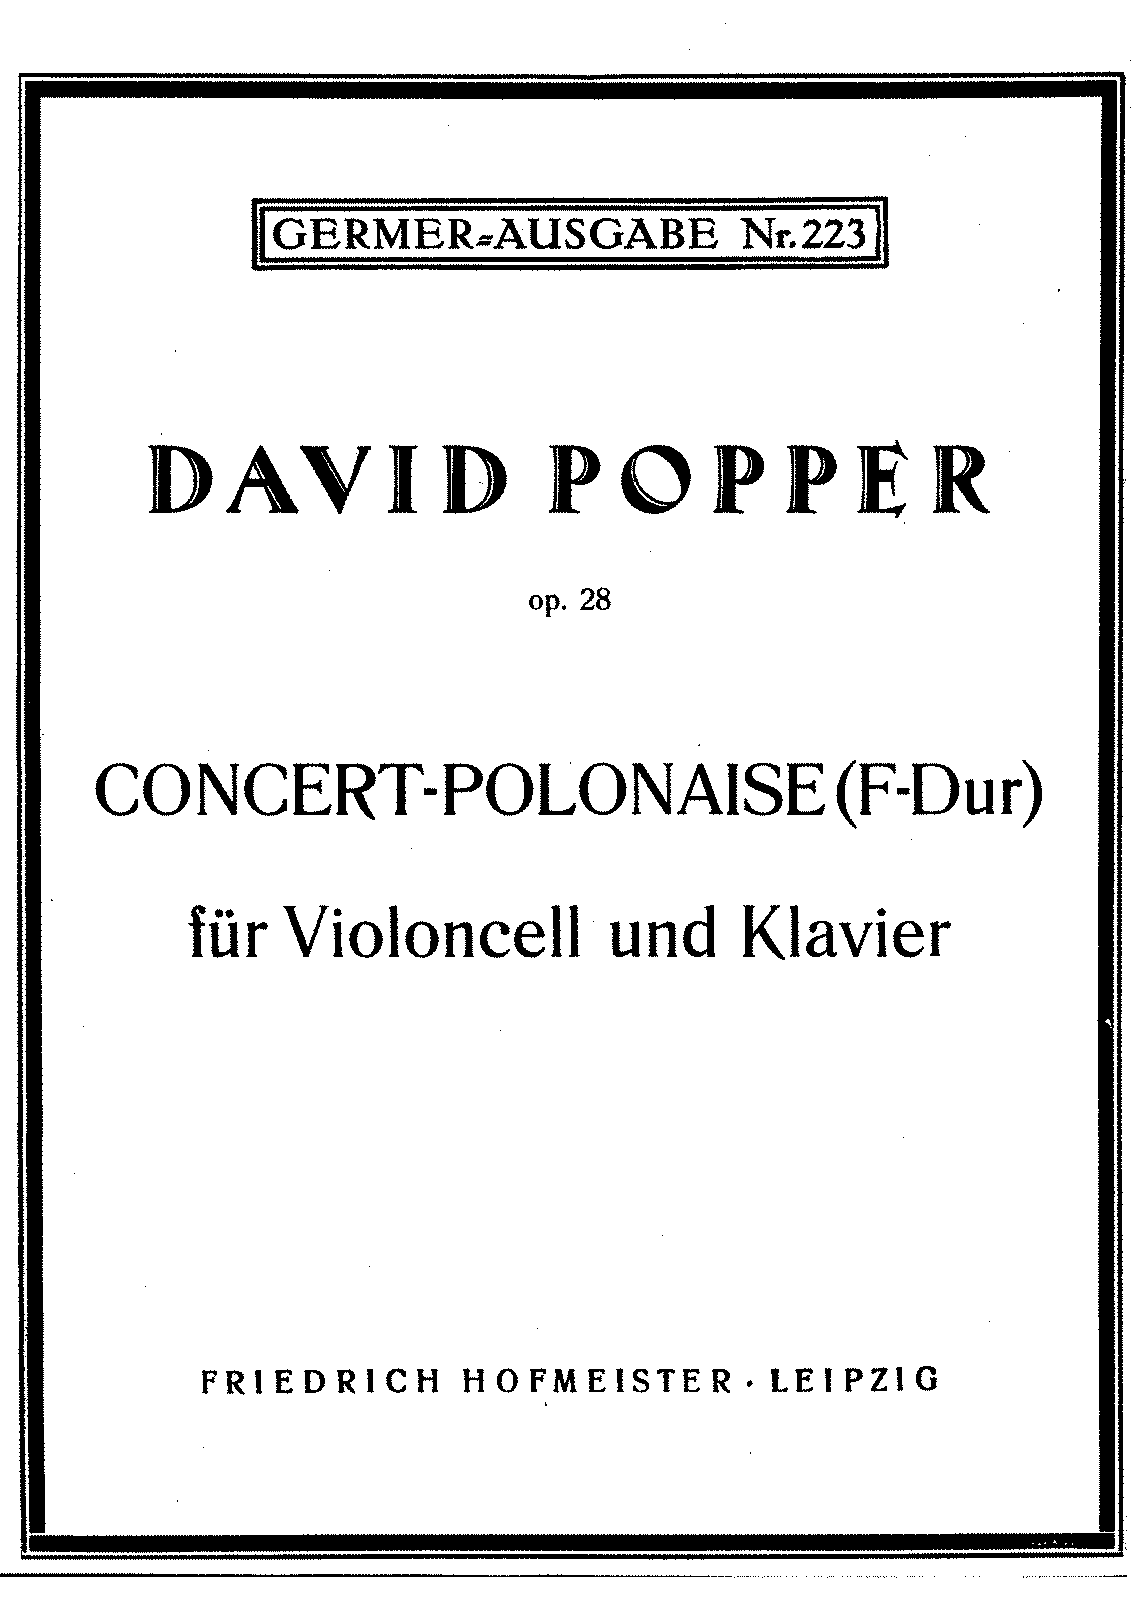 PMLP54003-Popper Concert Polonaise Op28 Cello Piano.pdf